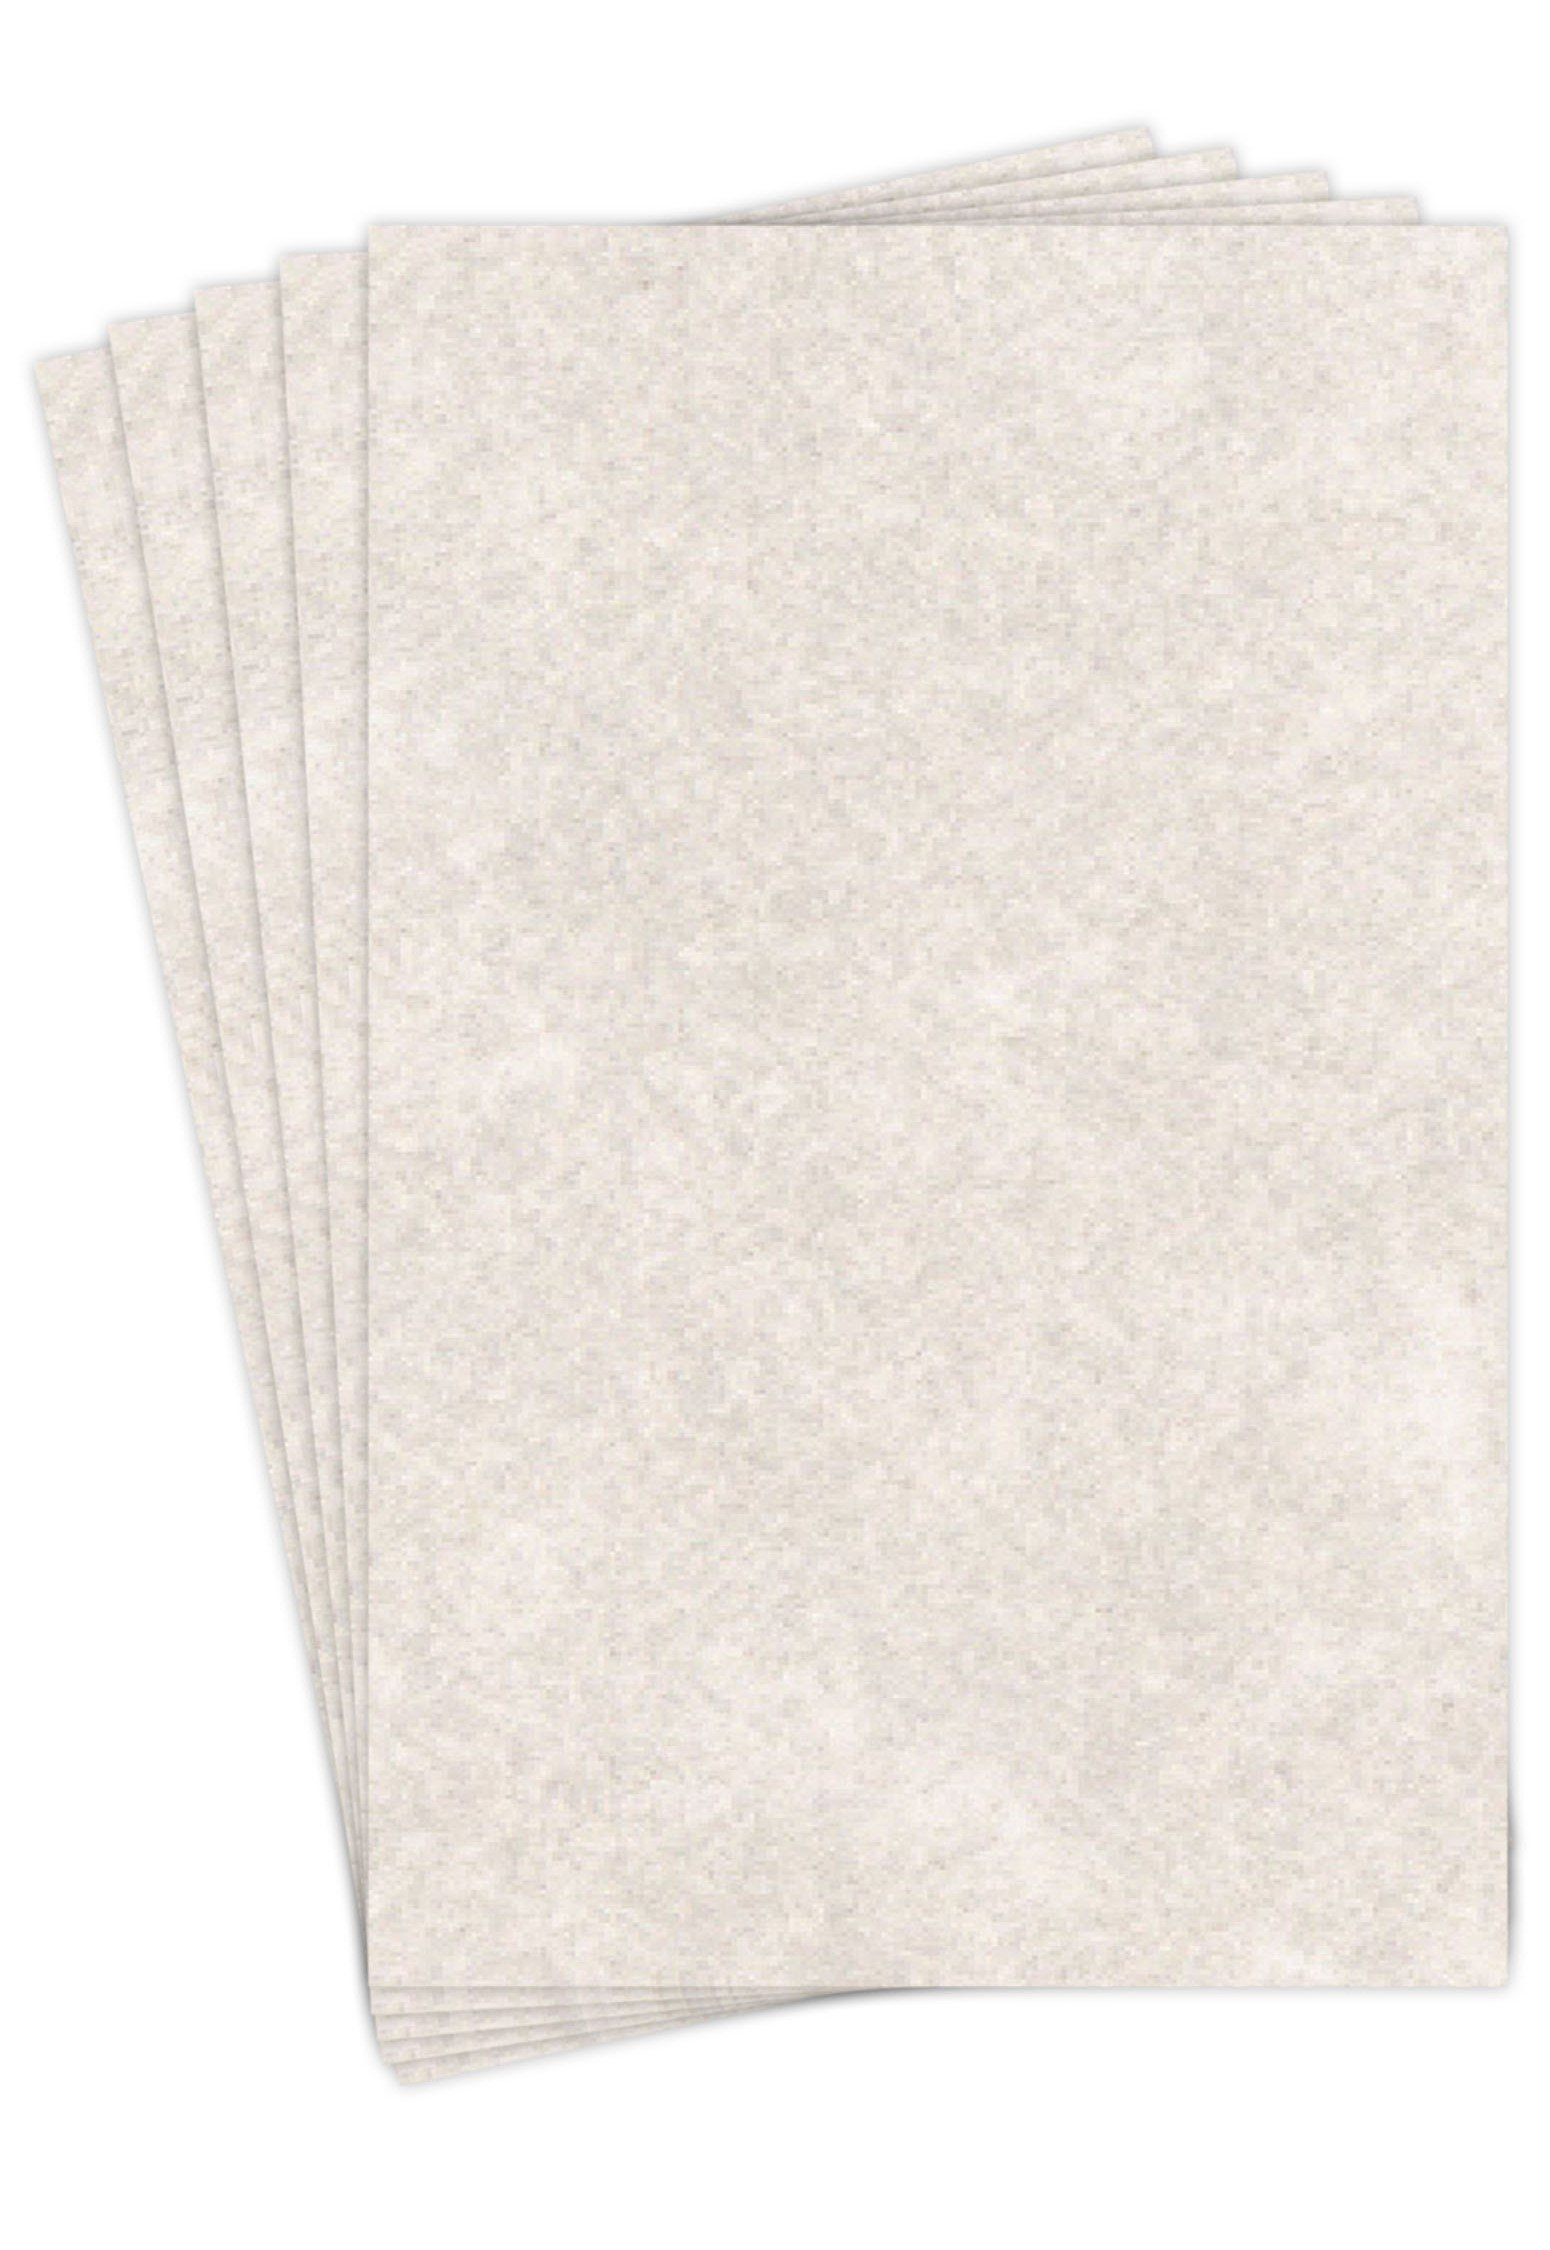 """Pewter Stationery Parchment Recycled Paper   65Lb Cover Cardstock   11"""" x 17"""" Inches   50 Sheets Per Pack"""